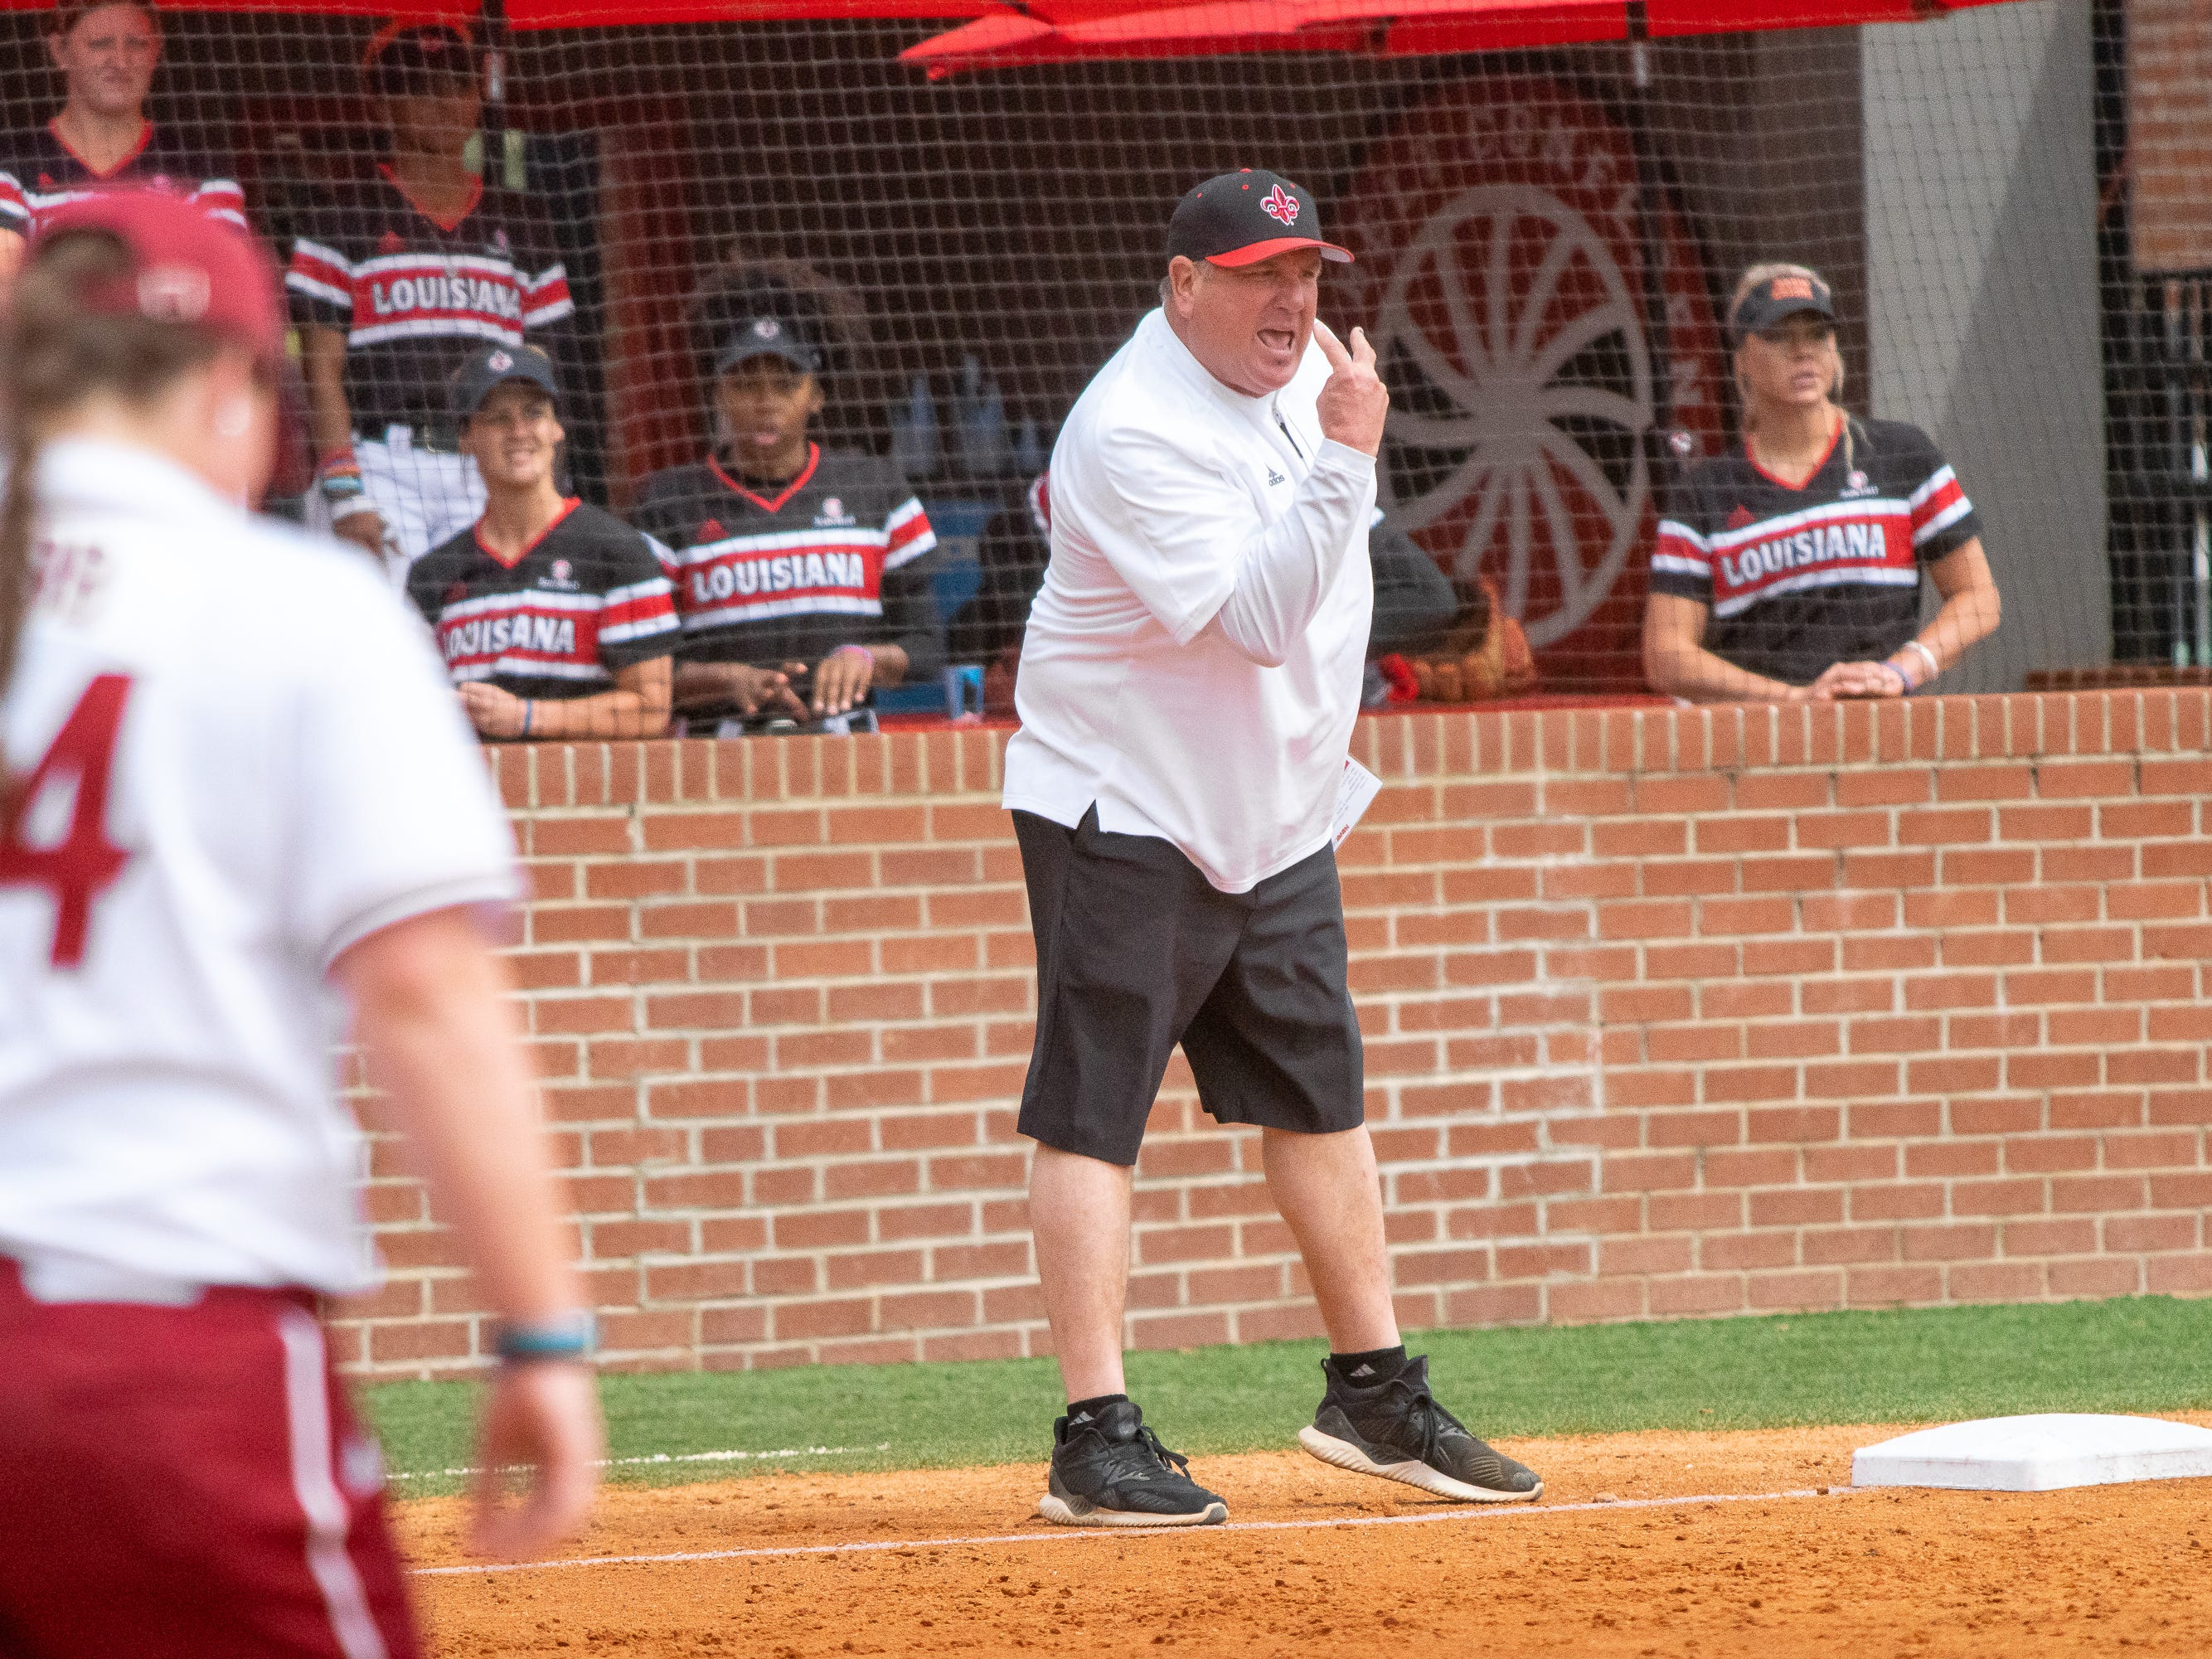 UL's head softball coach Gerry Glasco talks to his players from the sidelines as the Ragin' Cajuns take on the Troy Trojans at Yvette Girouard Field at Lamson Park on Saturday, March 16, 2019.